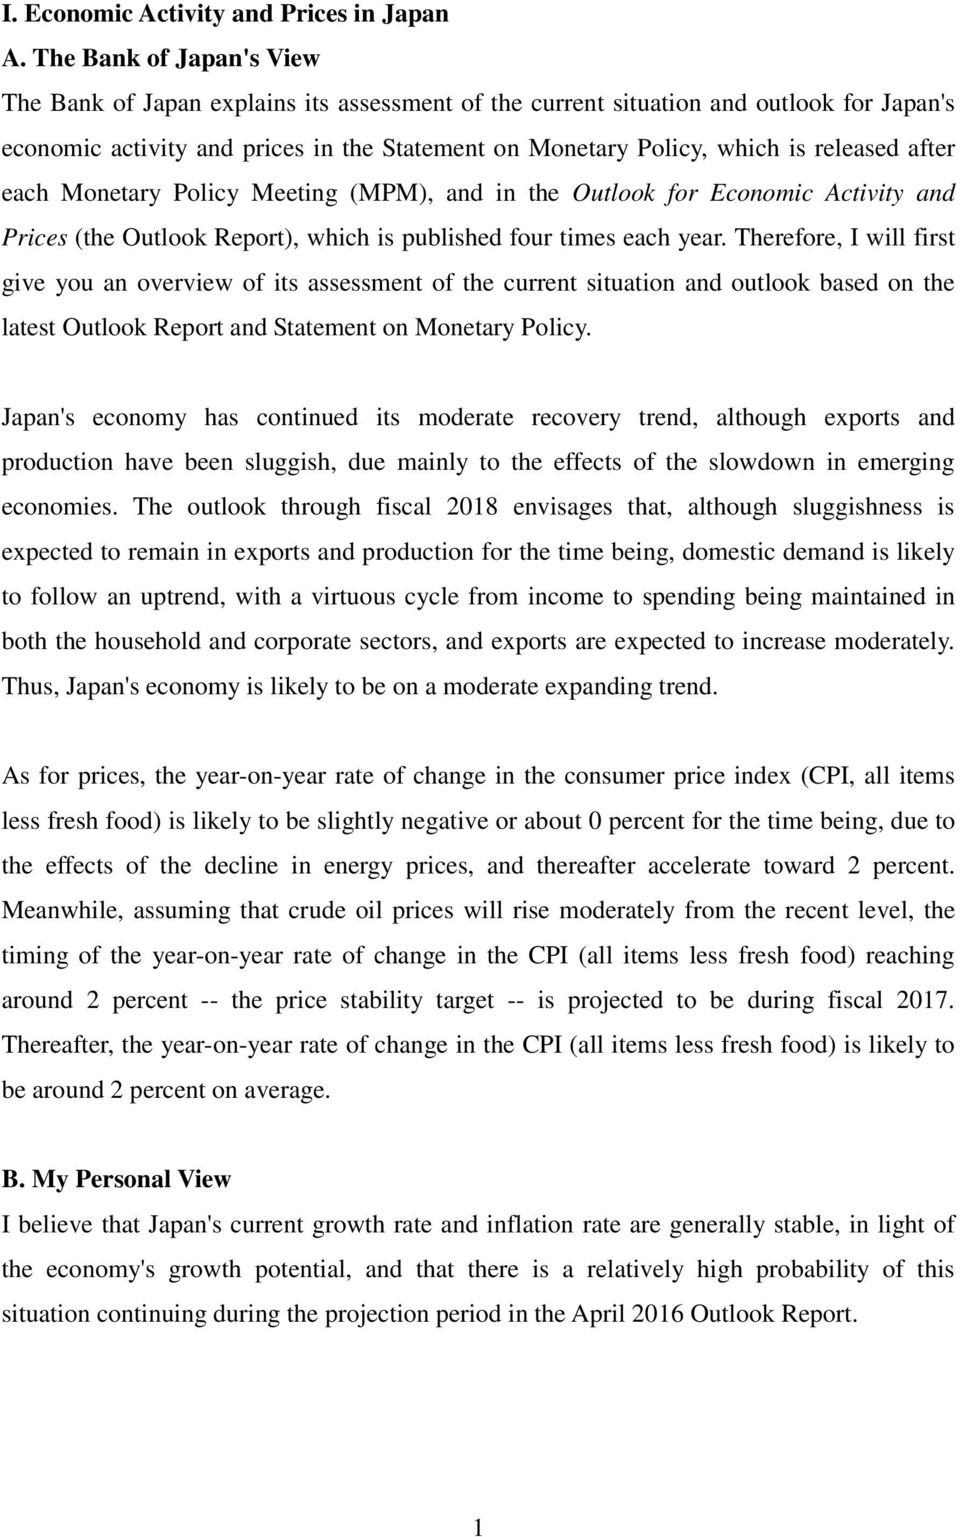 after each Monetary Policy Meeting (MPM), and in the Outlook for Economic Activity and Prices (the Outlook Report), which is published four times each year.